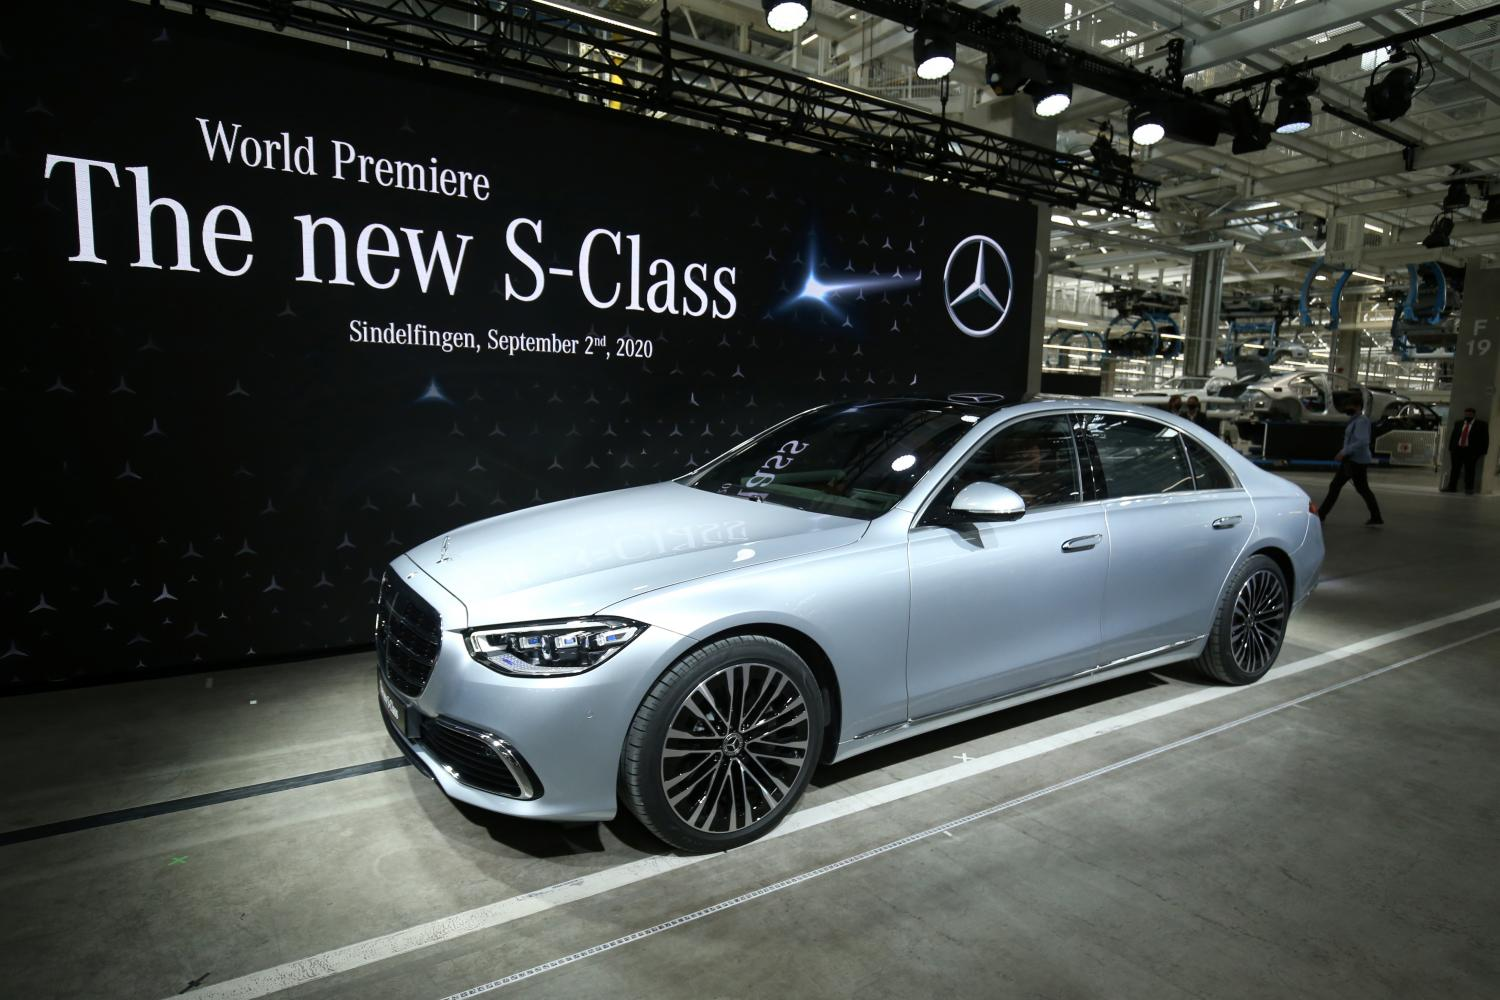 The new Mercedes-Benz S-Class sedan is pictured during its presentation at the Daimler production plant in Sindelfingen on Wednesday.(Reuters photo)